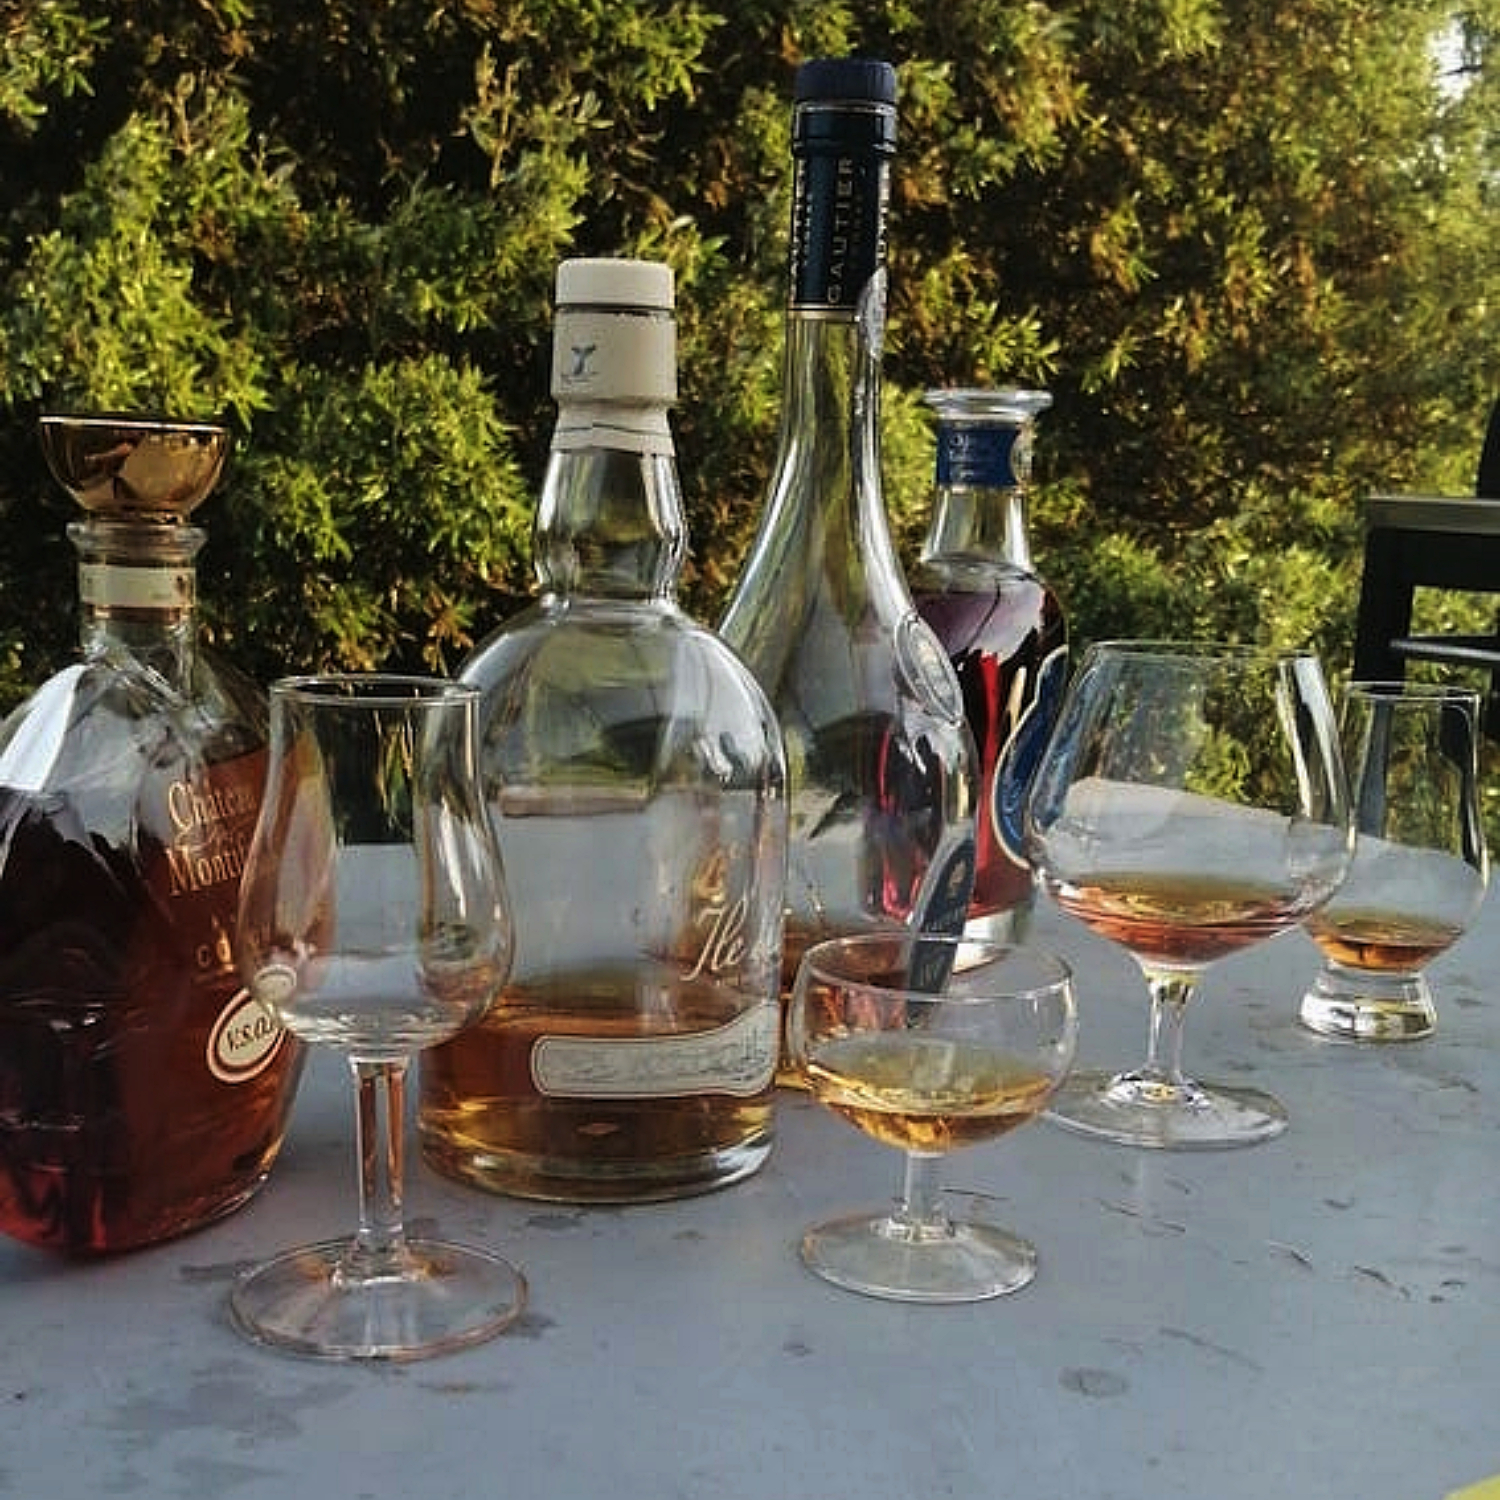 Cognac degustation with several different ones